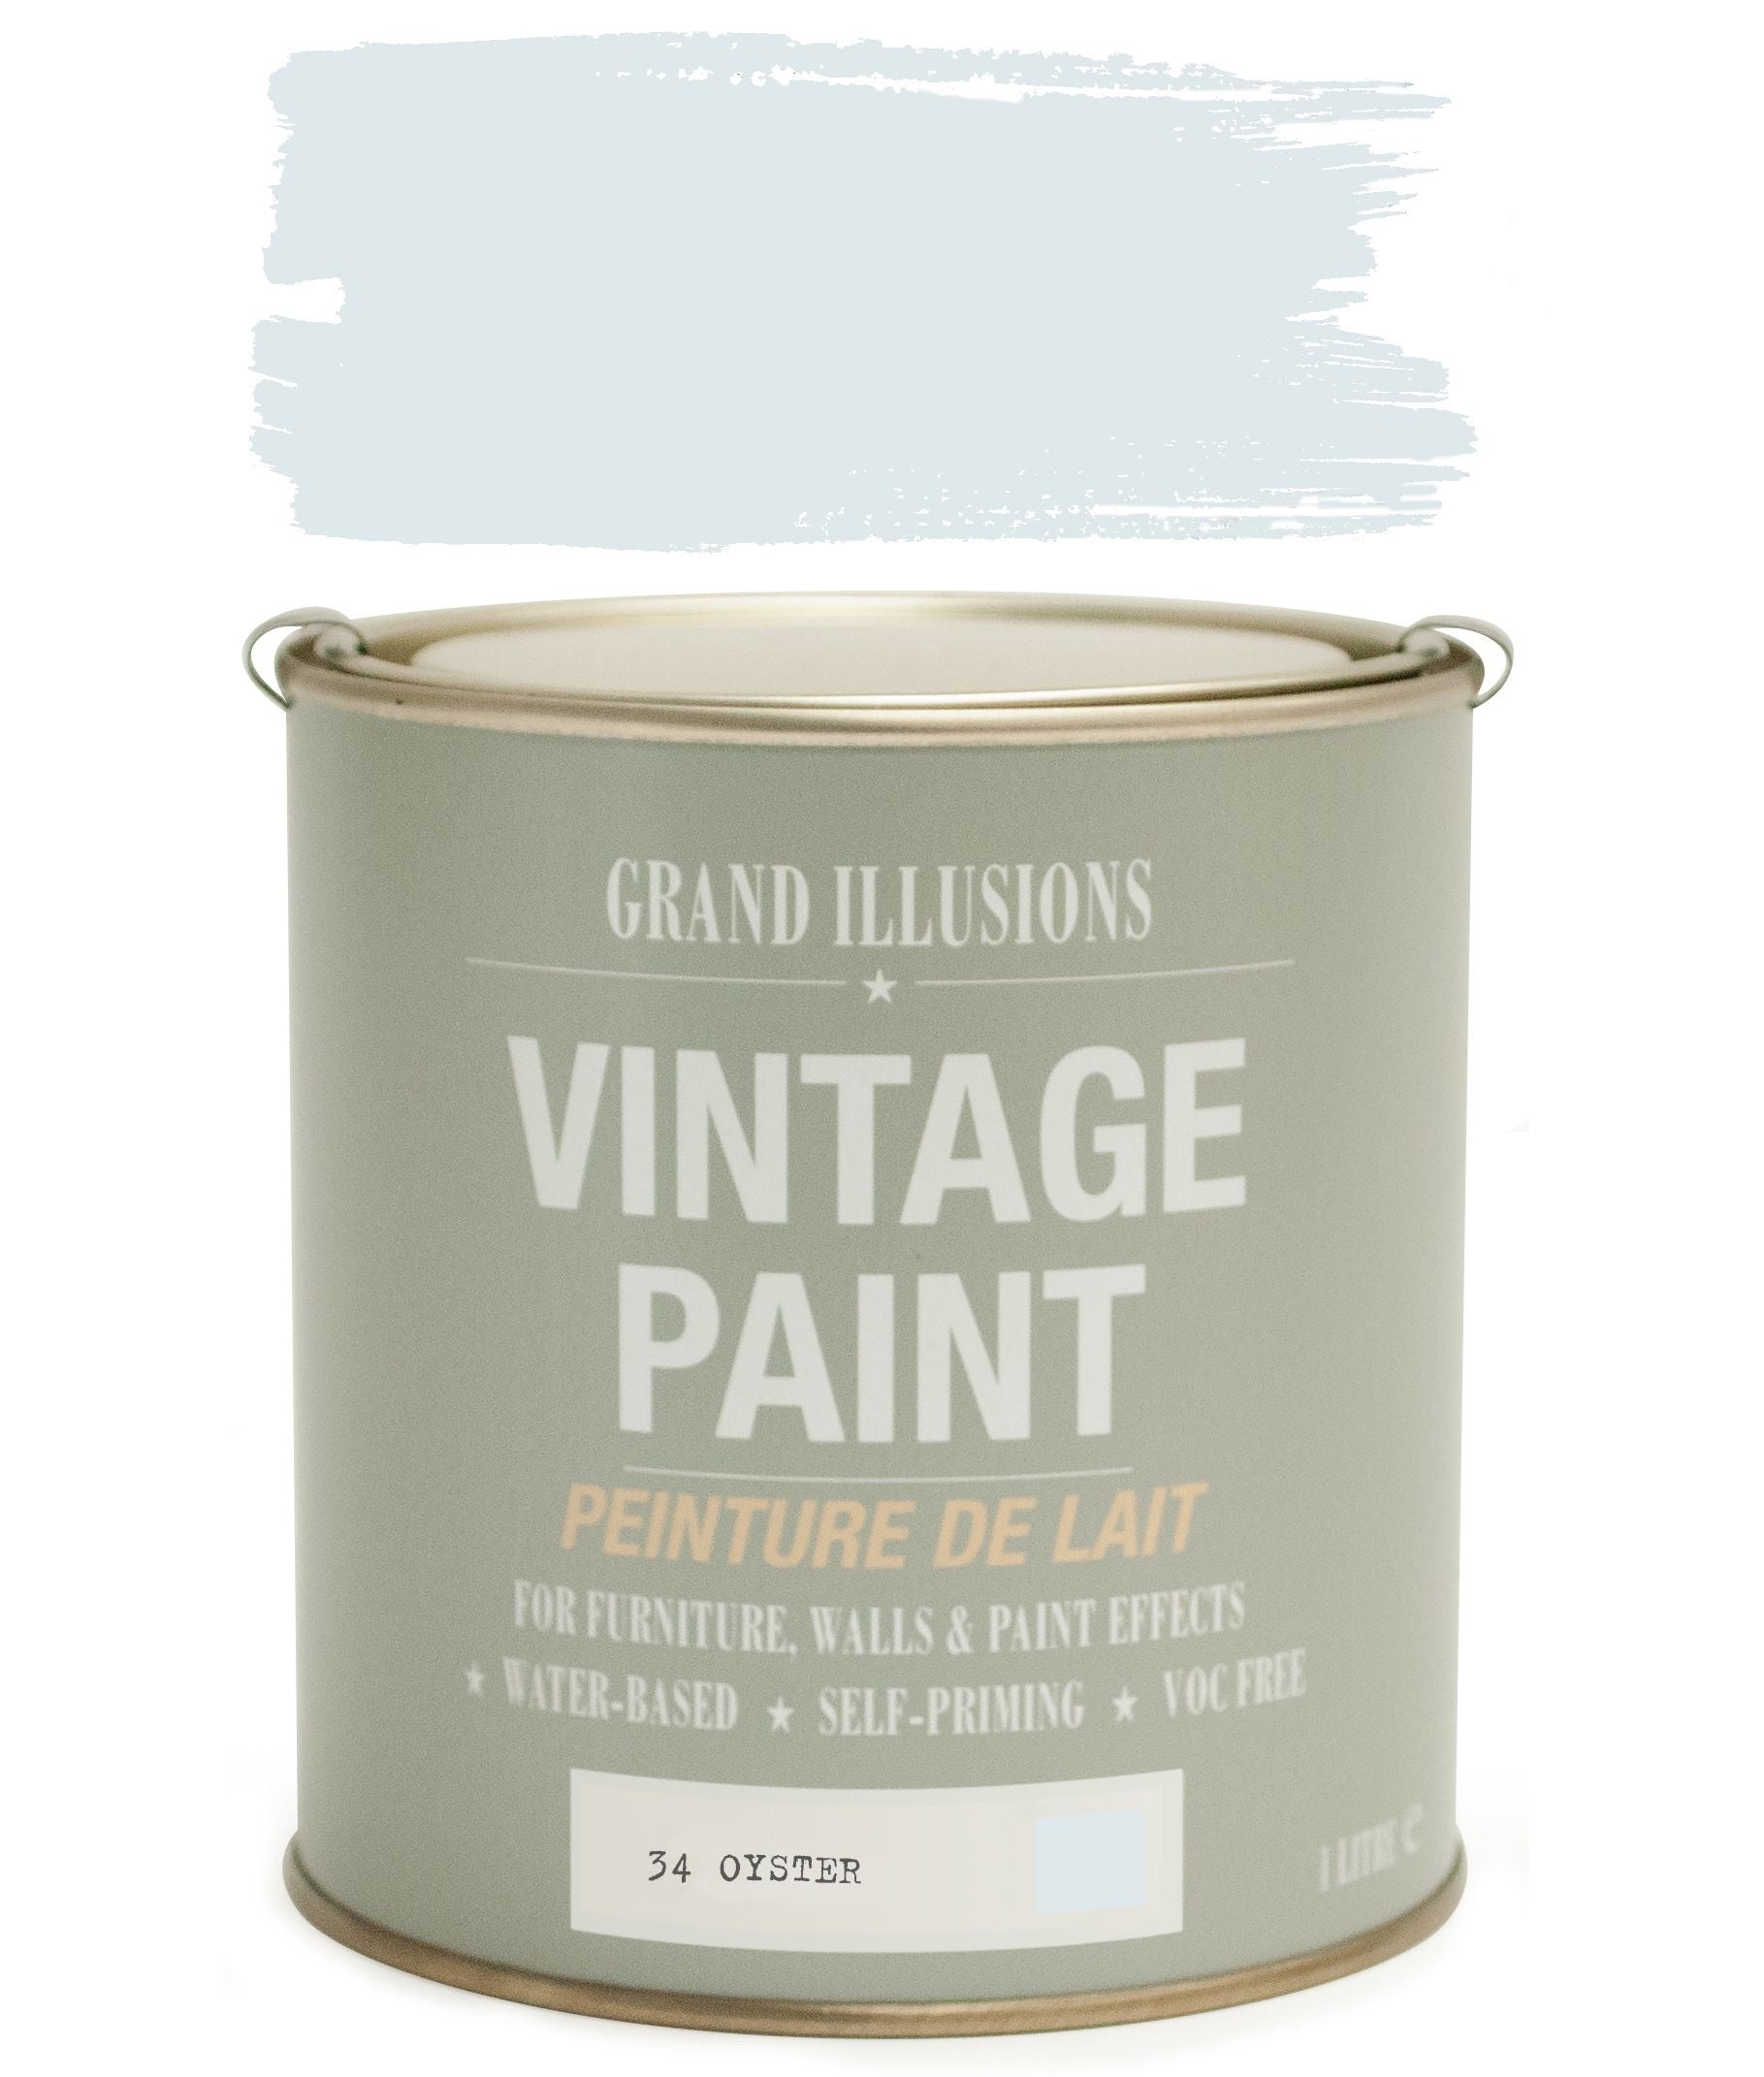 Vintage Paint No.34 Oyster